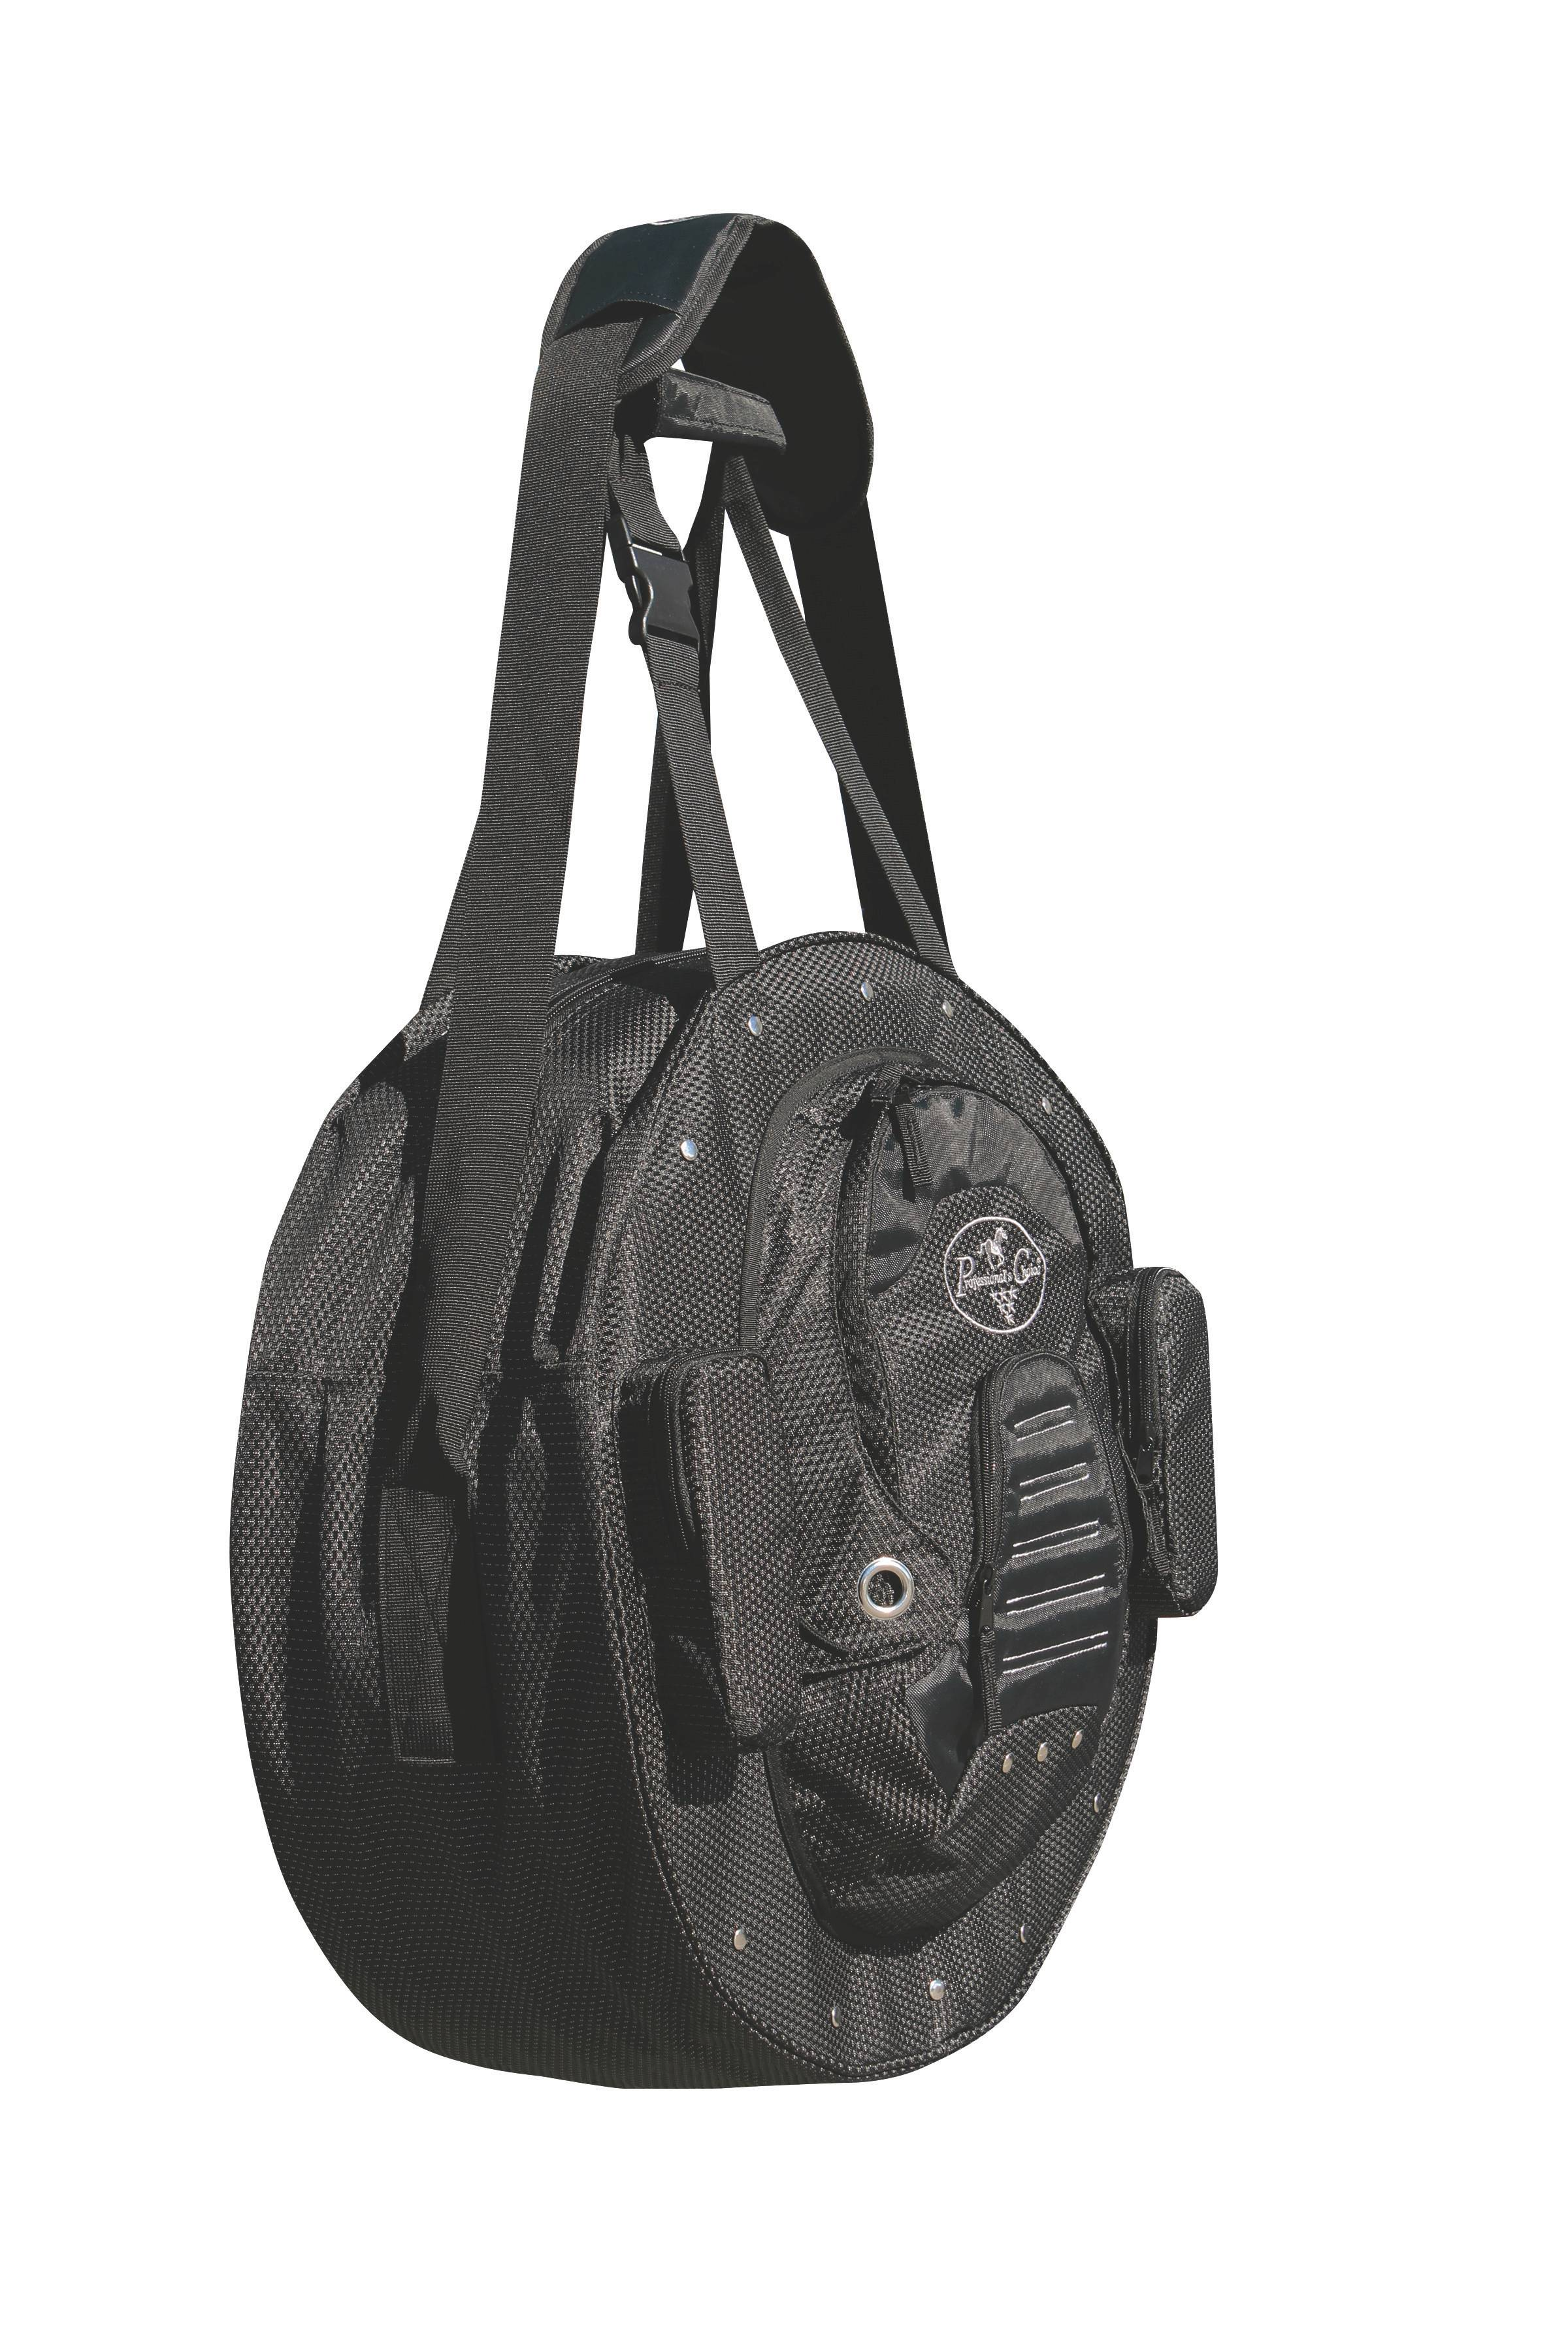 Professionals Choice Deluxe Rope Bag